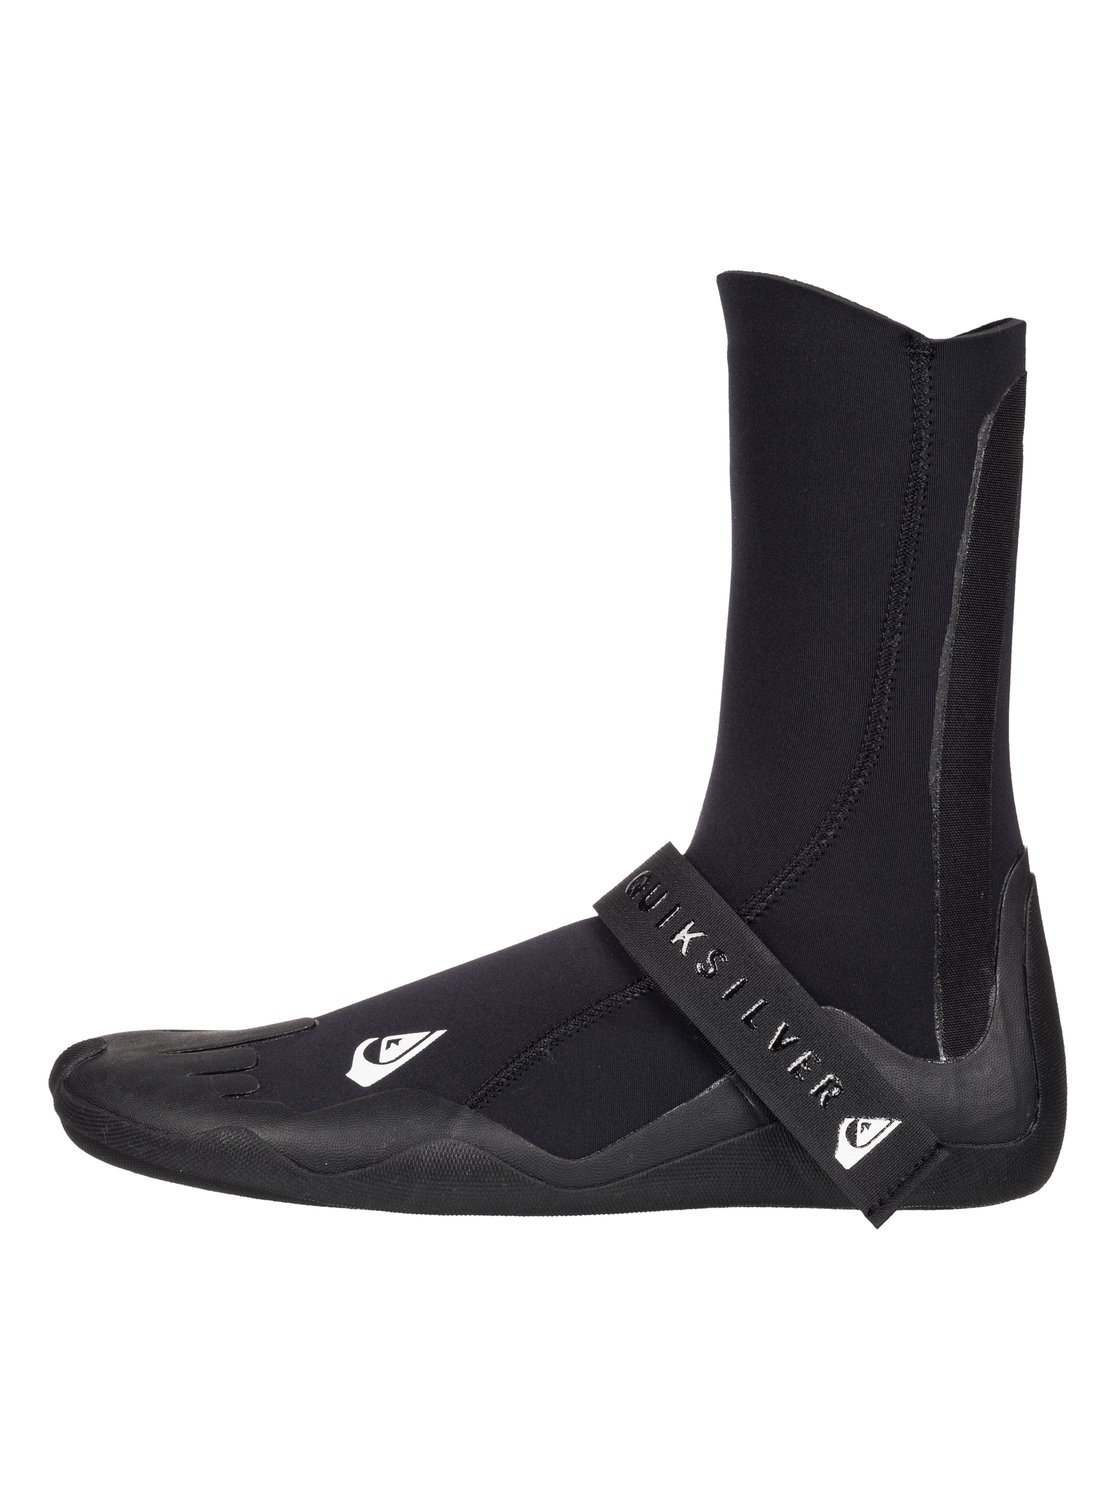 Syncro 3mm - Round Toe Surf Boots